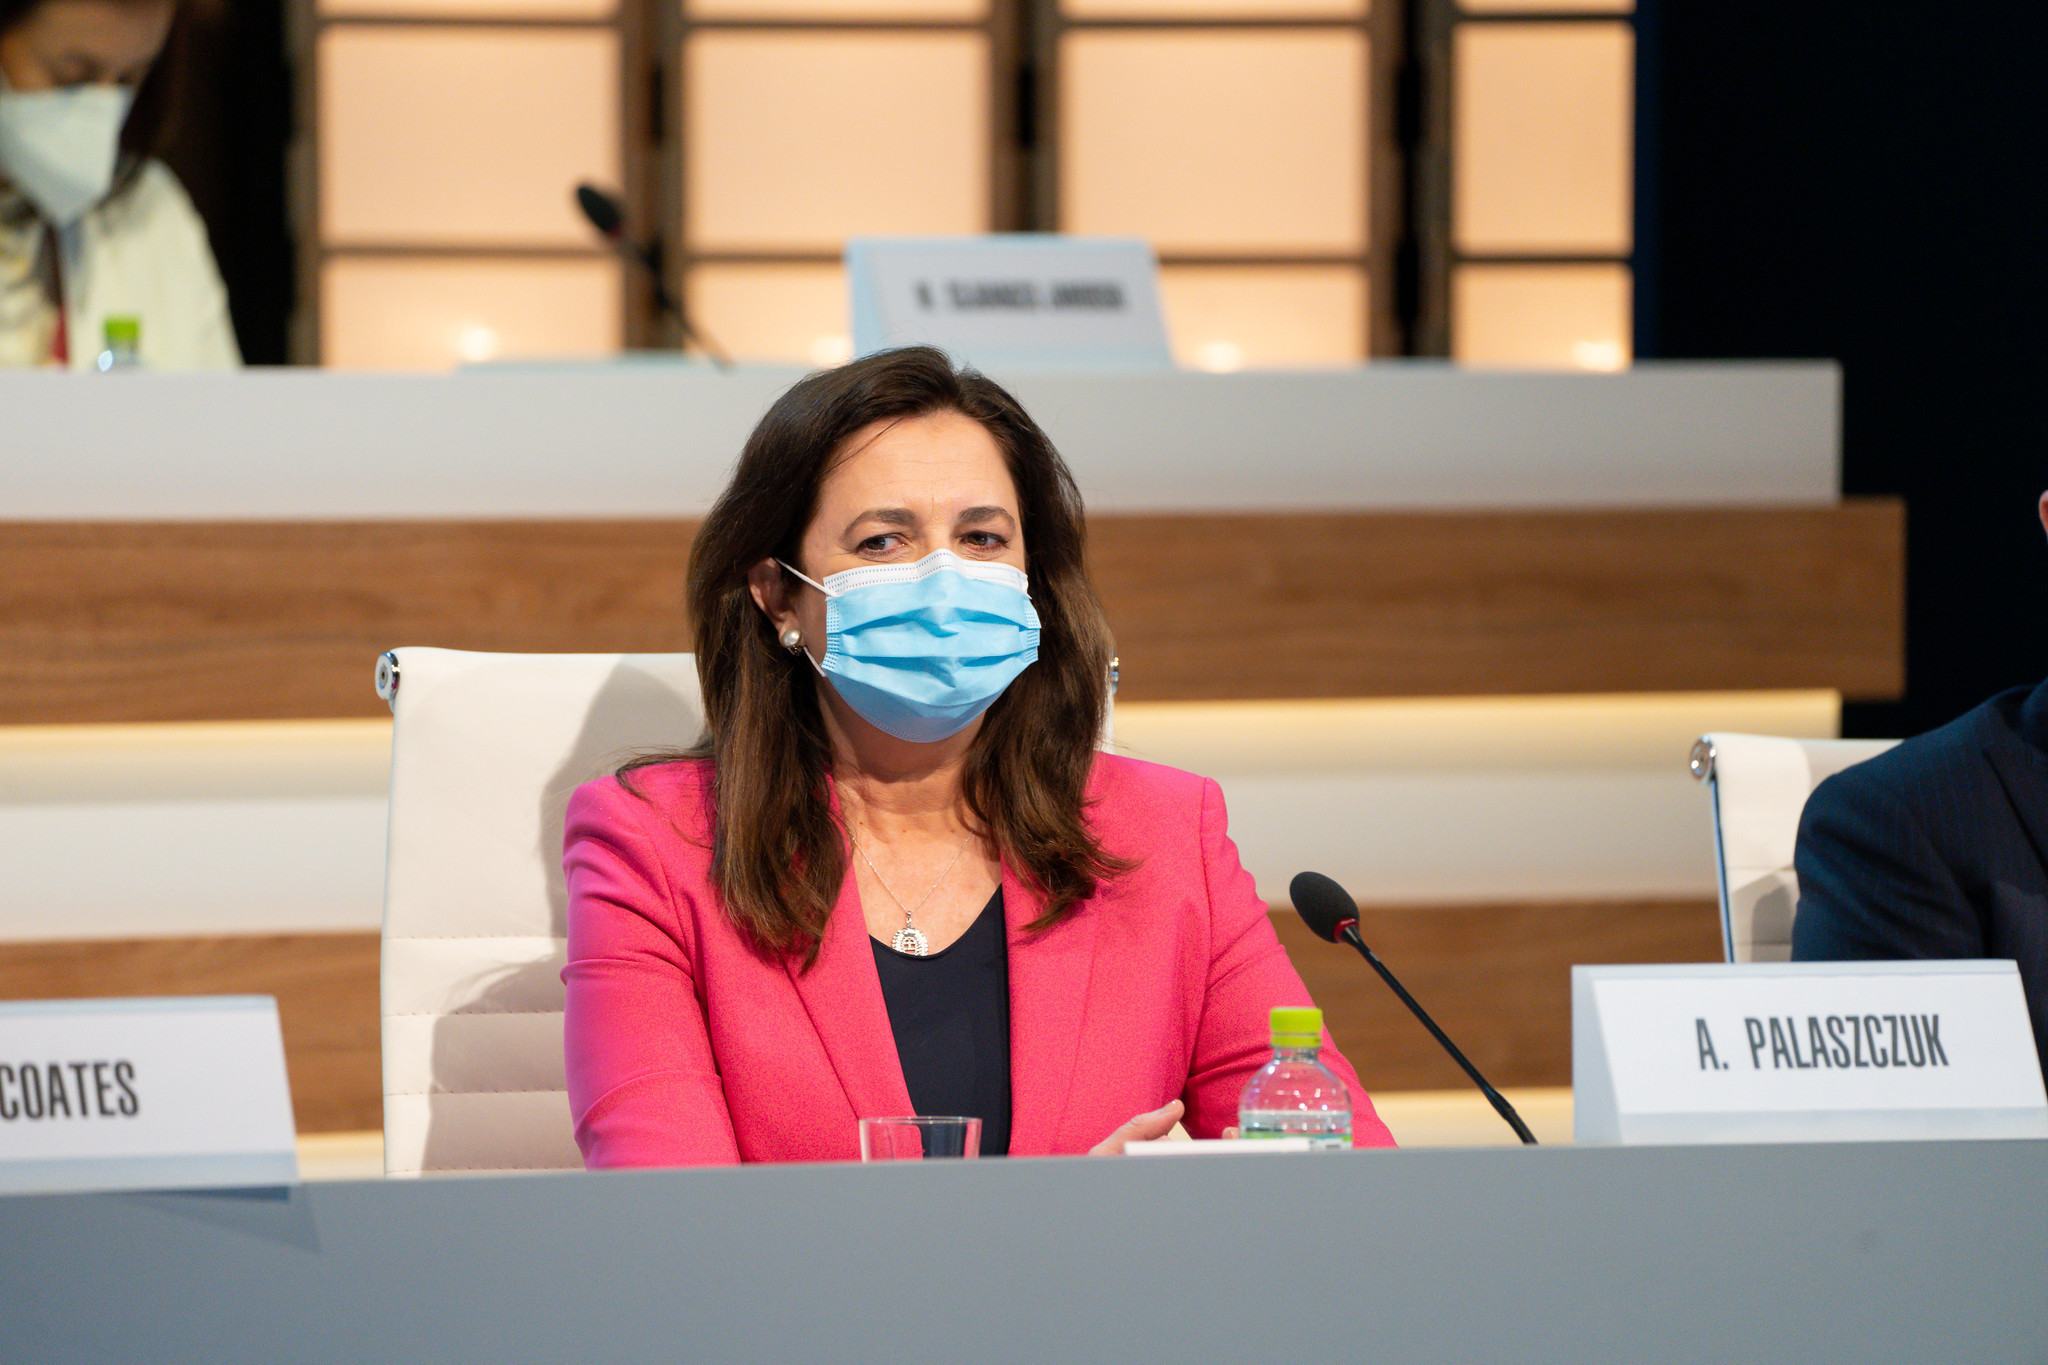 Queensland Premier Annastacia Palaszczuk attended the IOC Session in Tokyo ©IOC